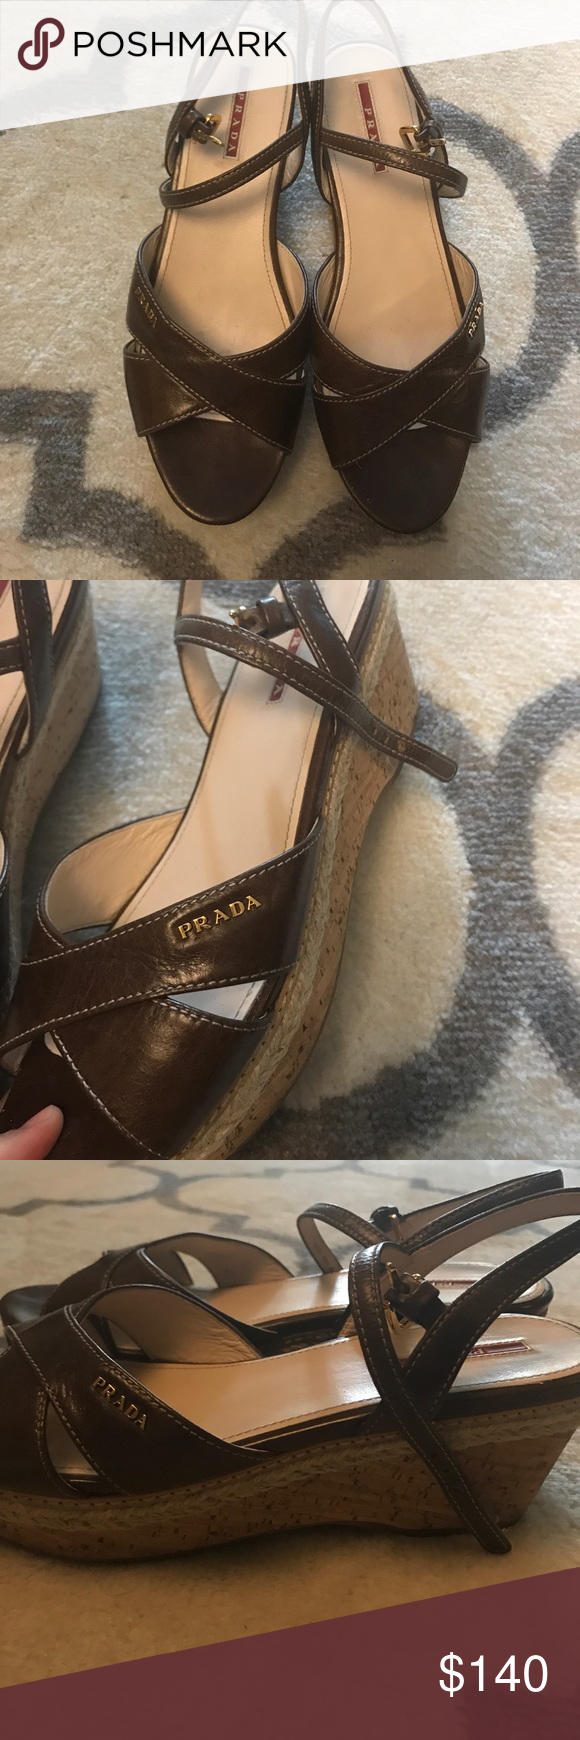 Prada brown wedges size 39 with Prada logo Beautiful and very comfortable brown Prada wedges. Wedges are just a little dirty from wear but have a long life left. The are size 39 but fits best a size 8-8.5. Shoes only! Prada Shoes Wedges